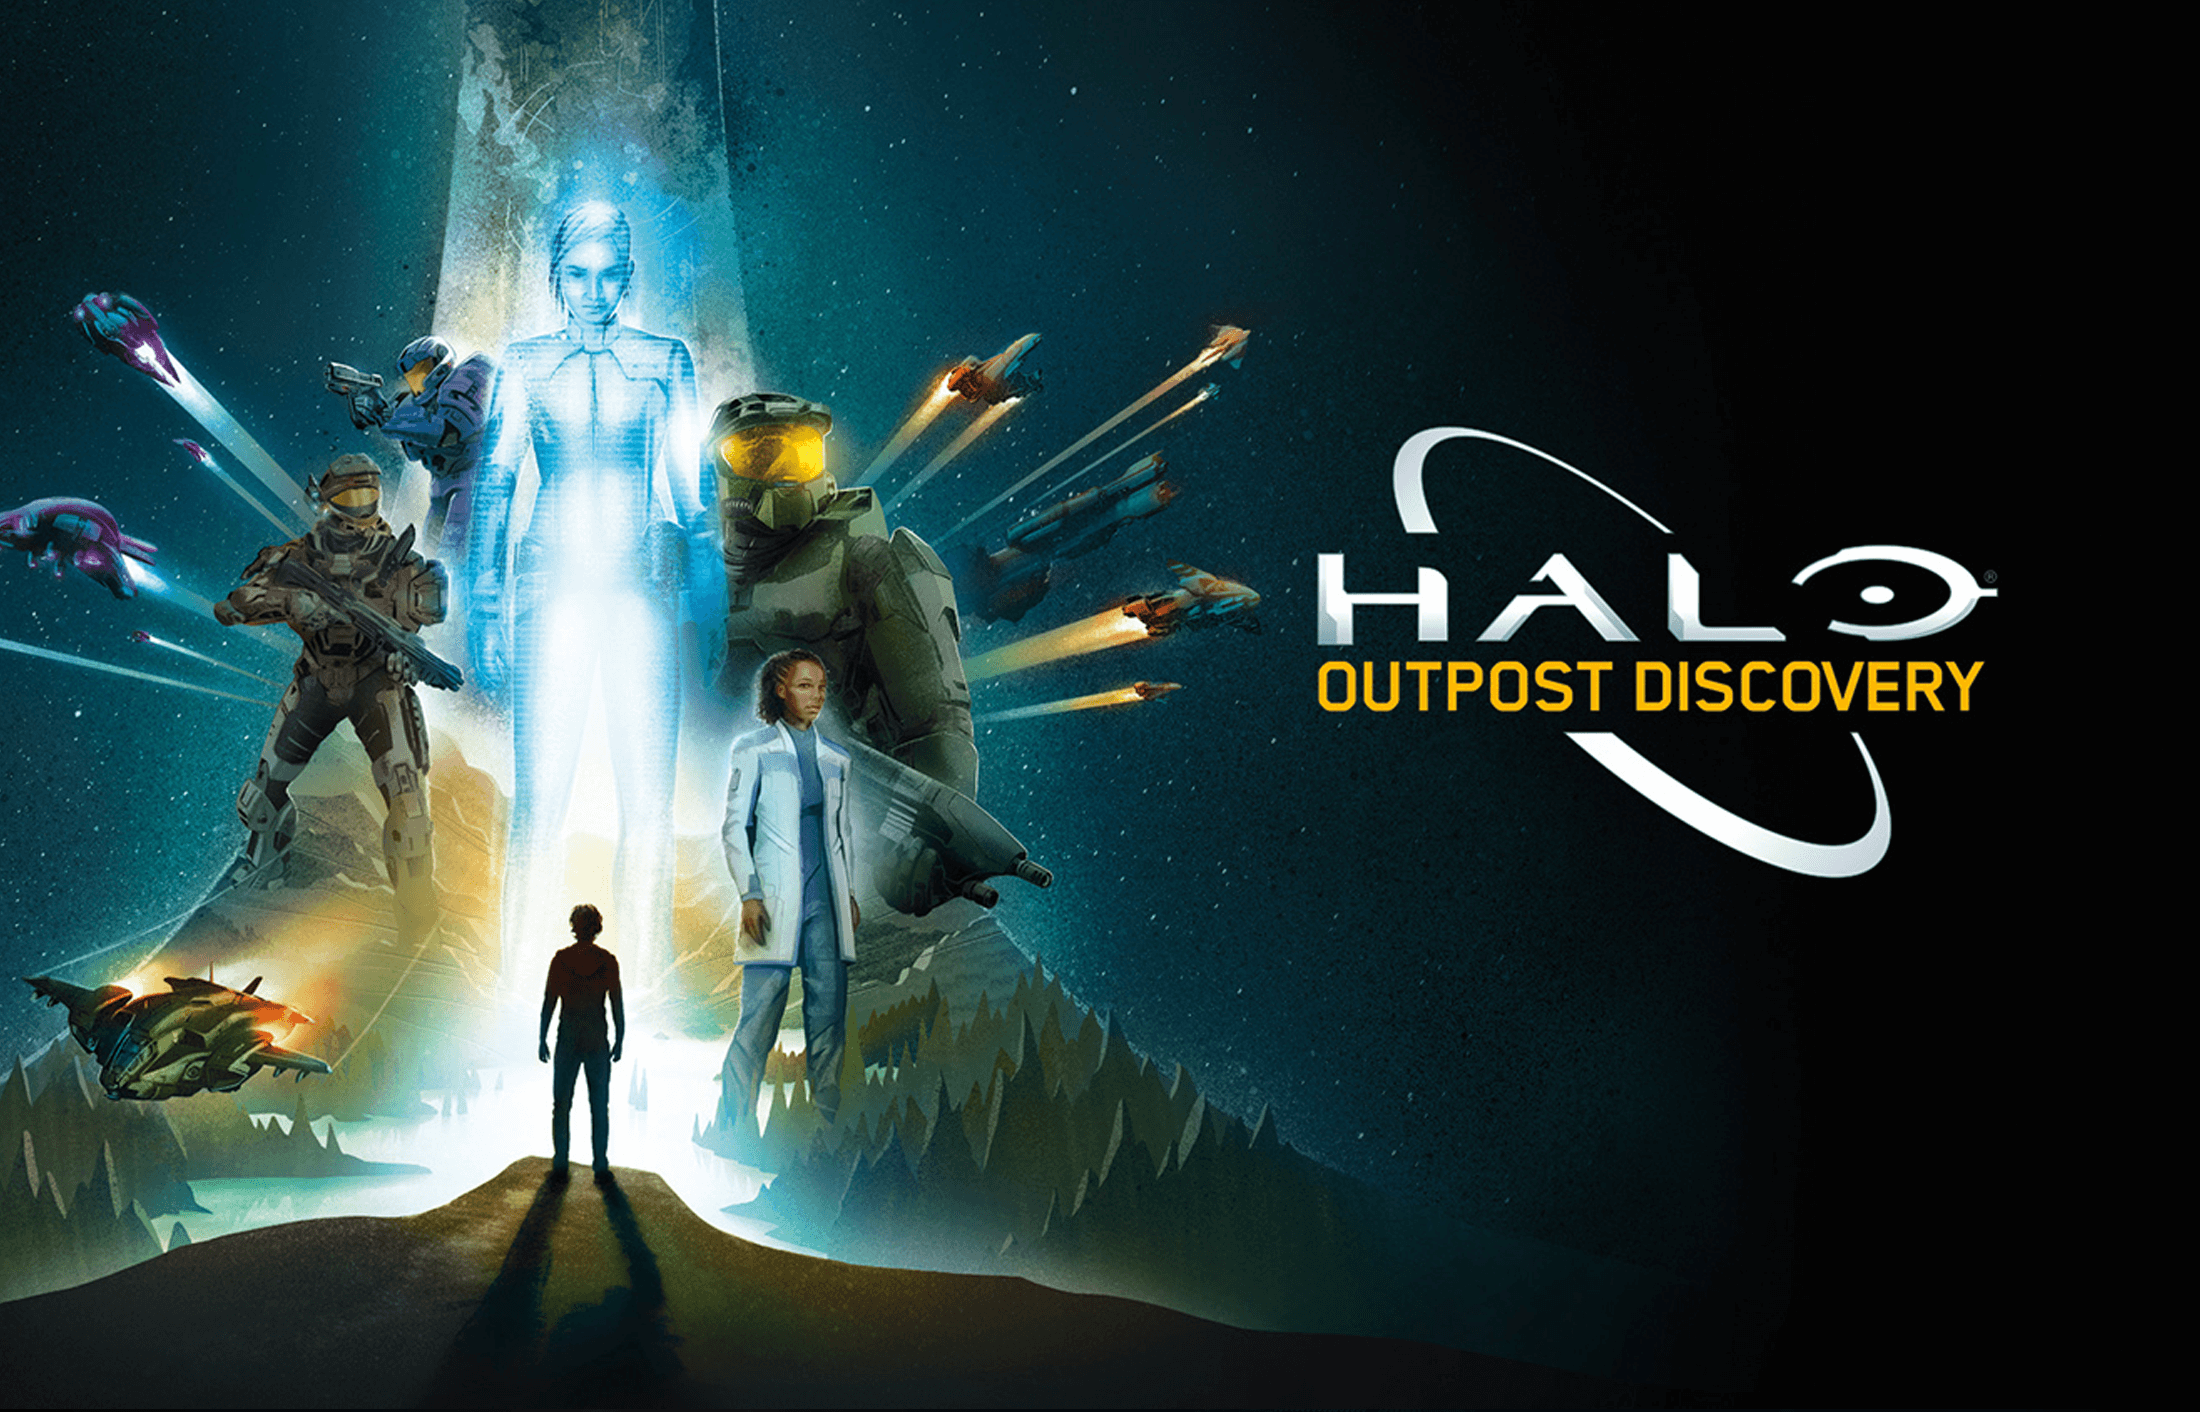 Halo: Outpost Discovery – Mobile App